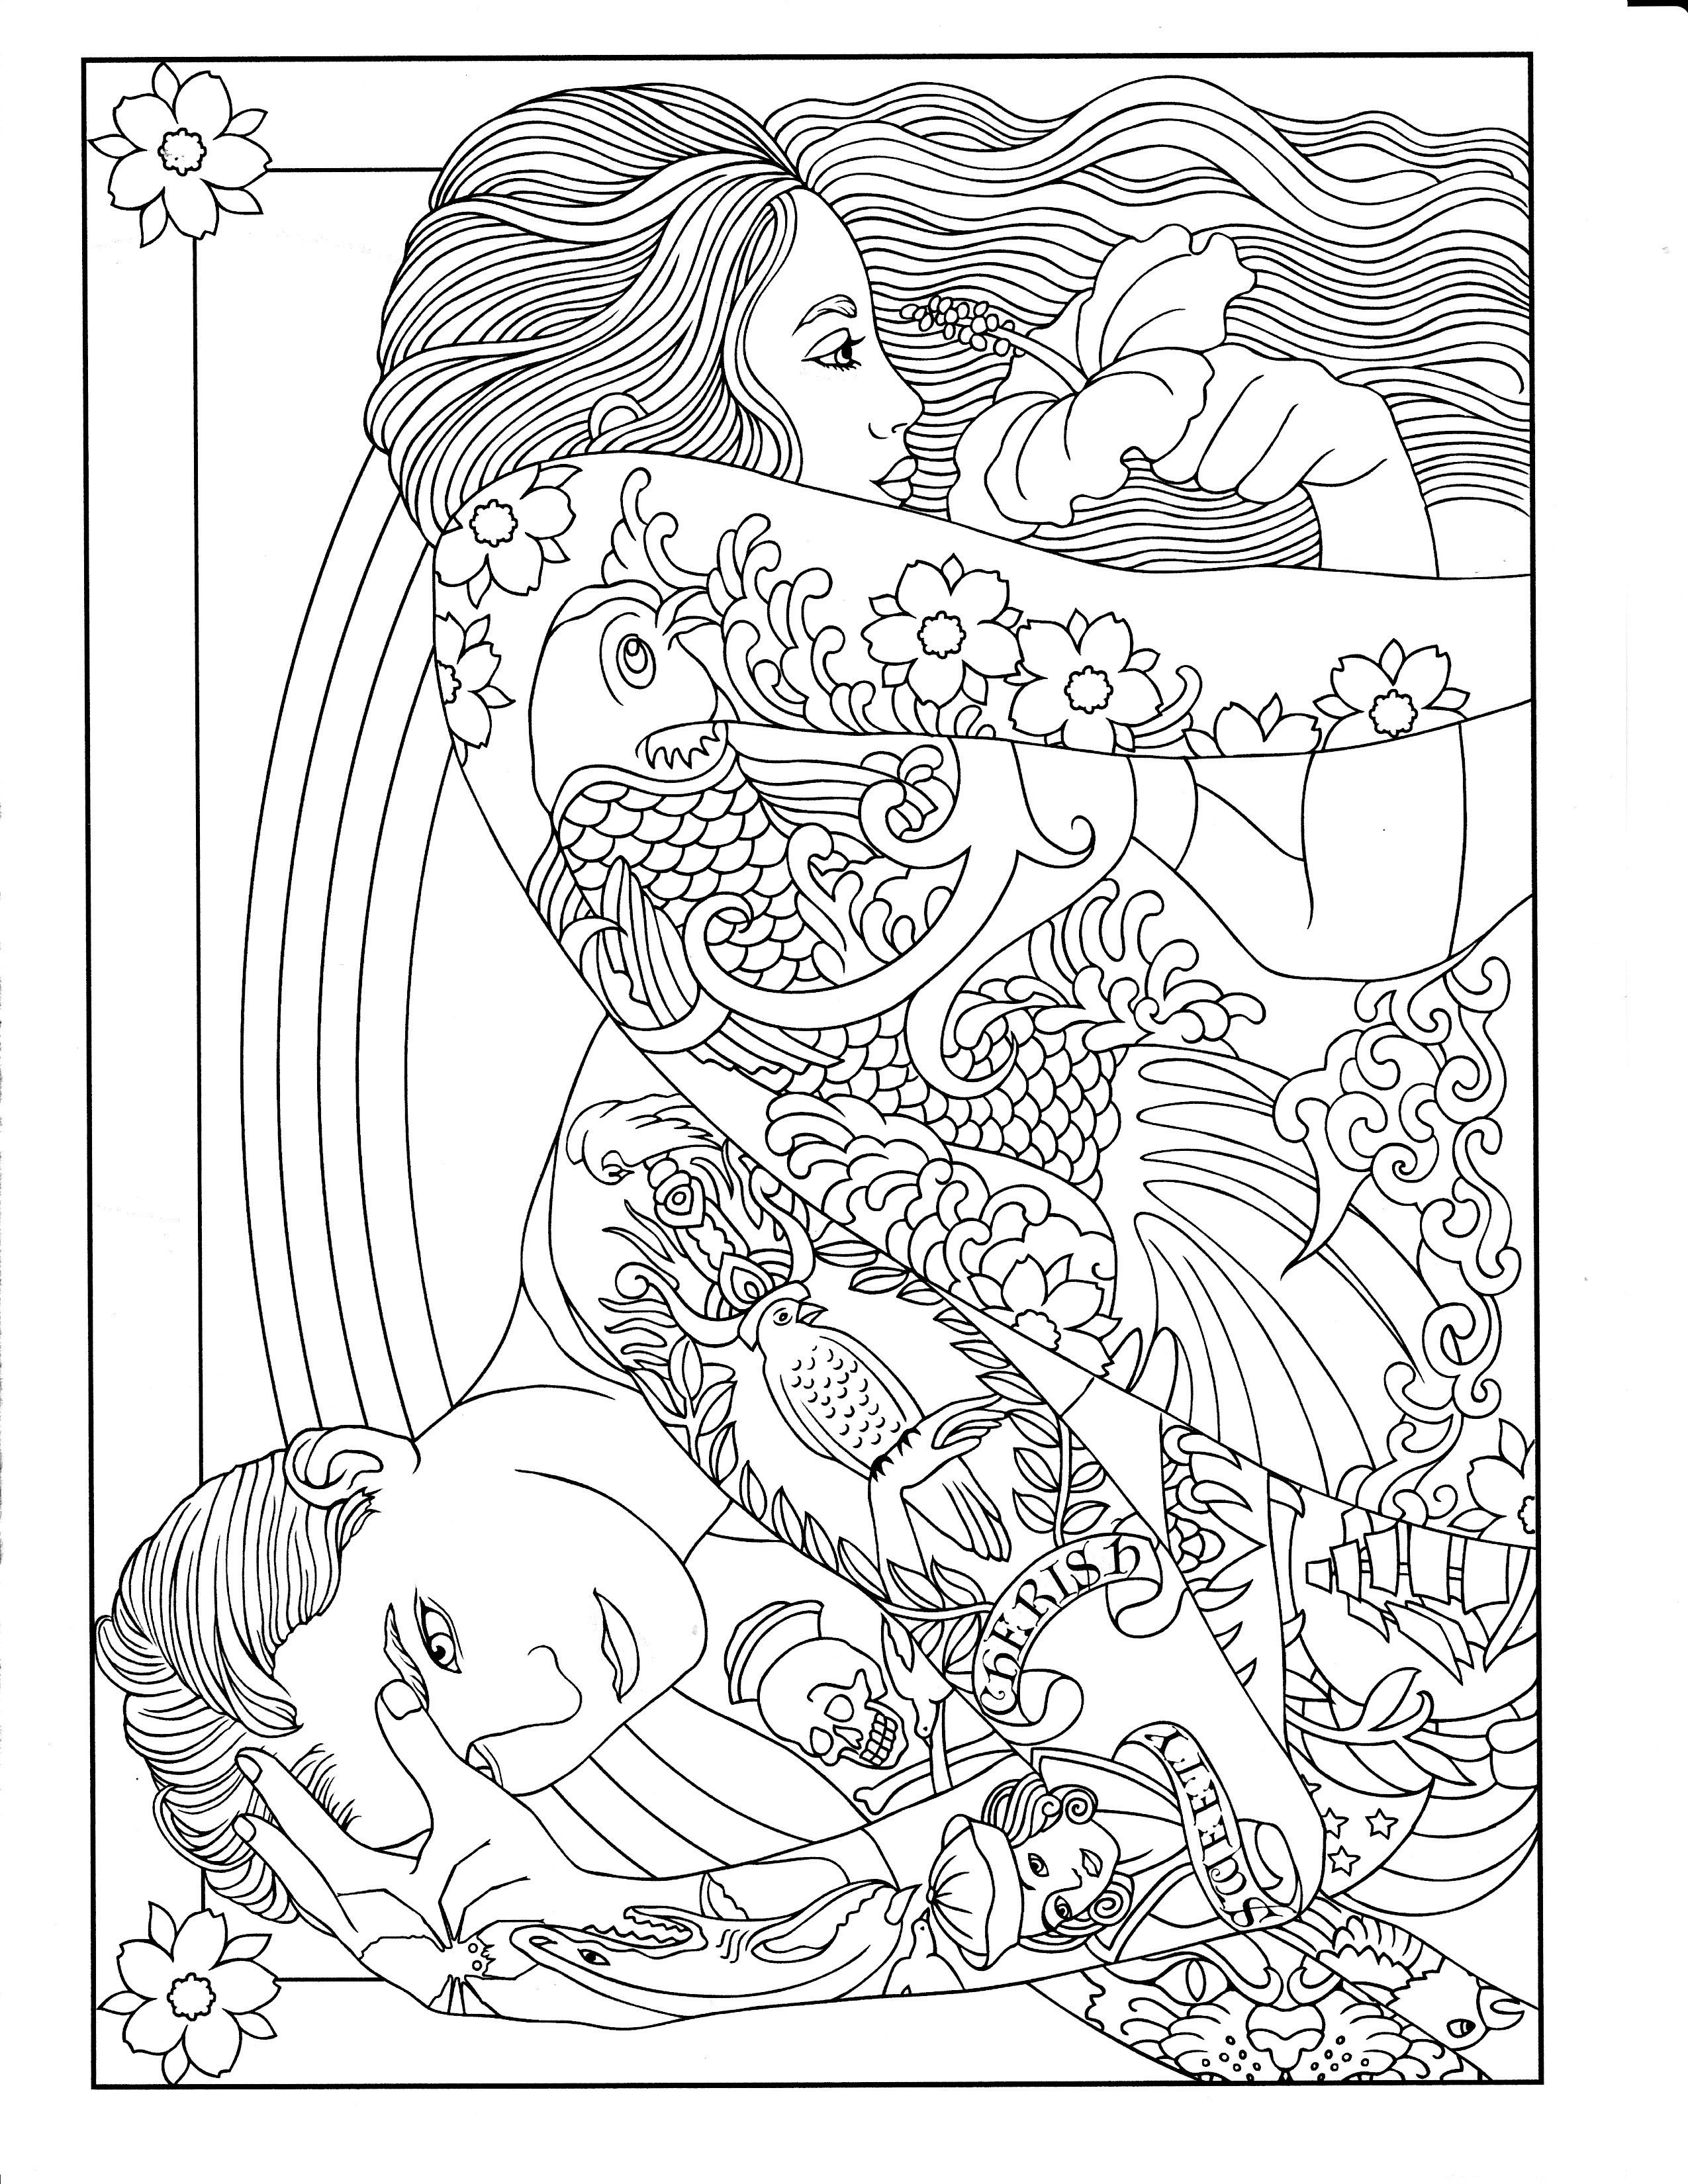 Body Art Tattoo Designs Dover Design Coloring Books Marty Noble Designs Coloring Books Coloring Books Mandala Coloring Pages